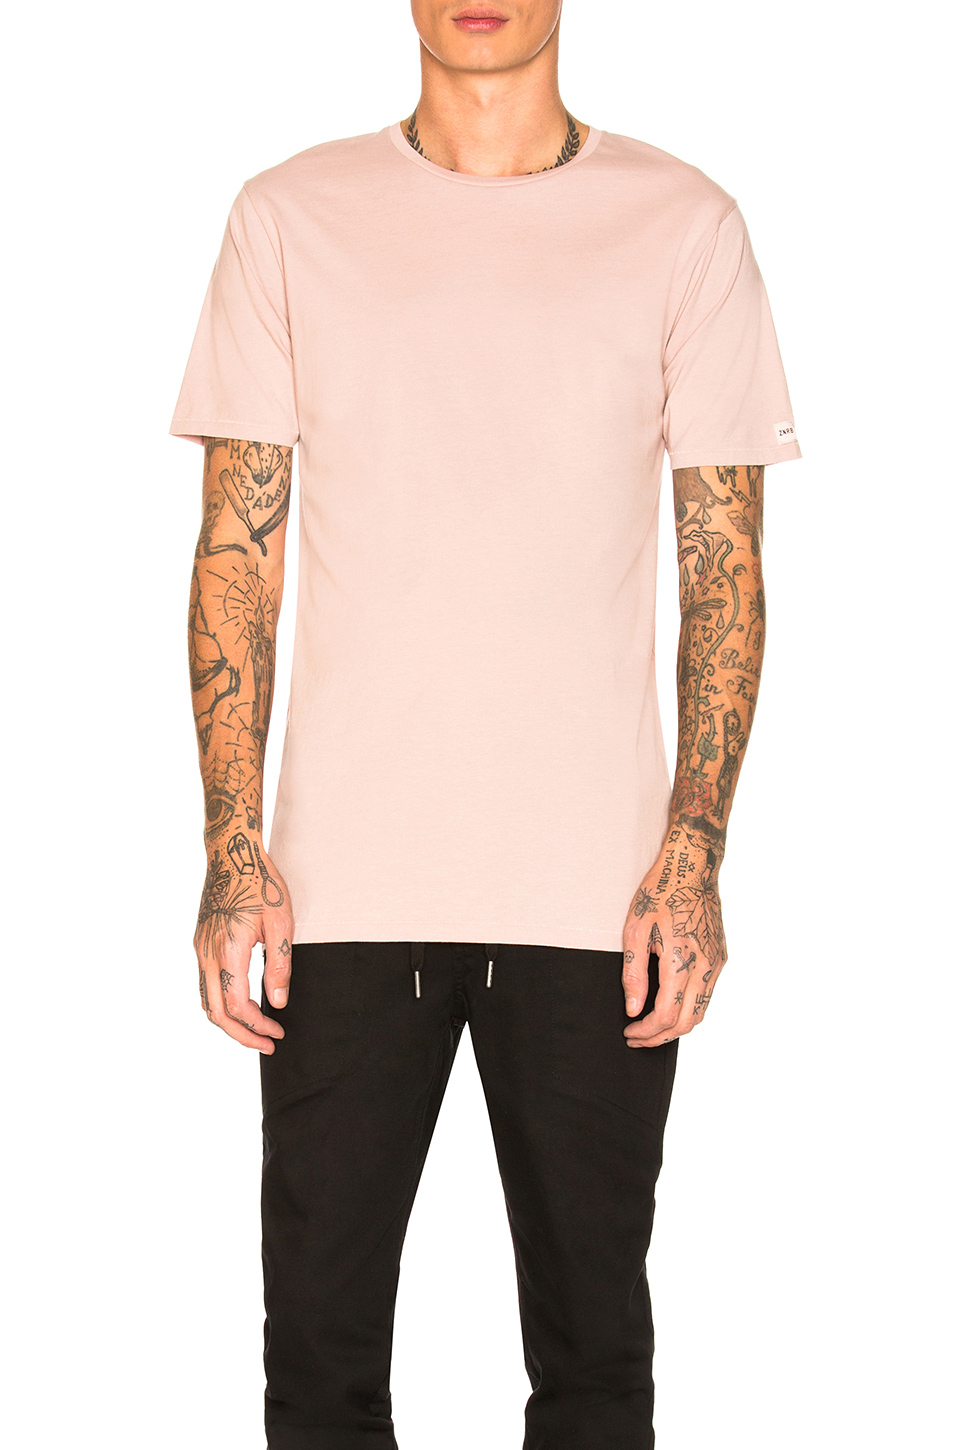 Zanerobe Flintlock Tee in Pigment Quartz